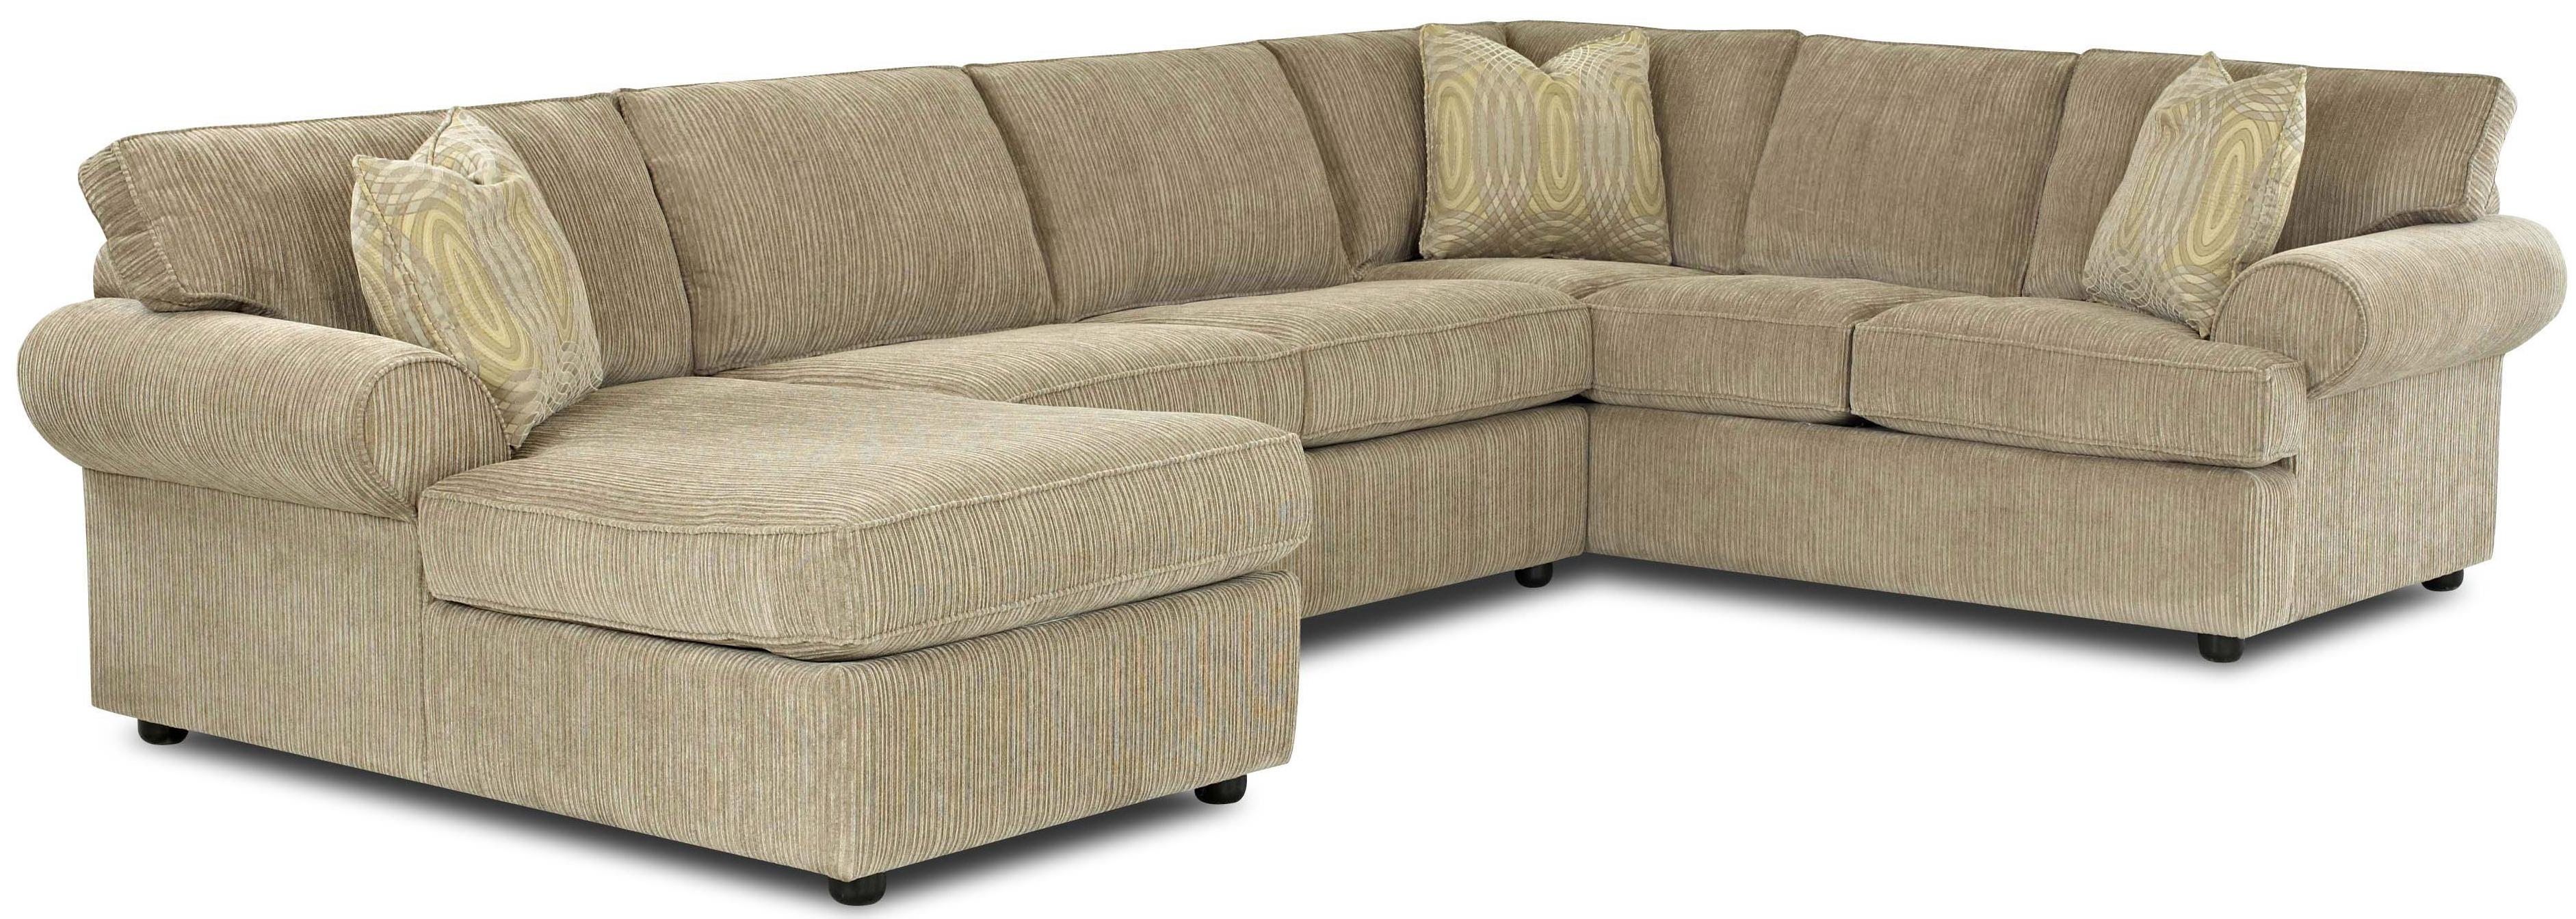 Wheat Sectional Sleeper Sofa For Home Furniture Ideas